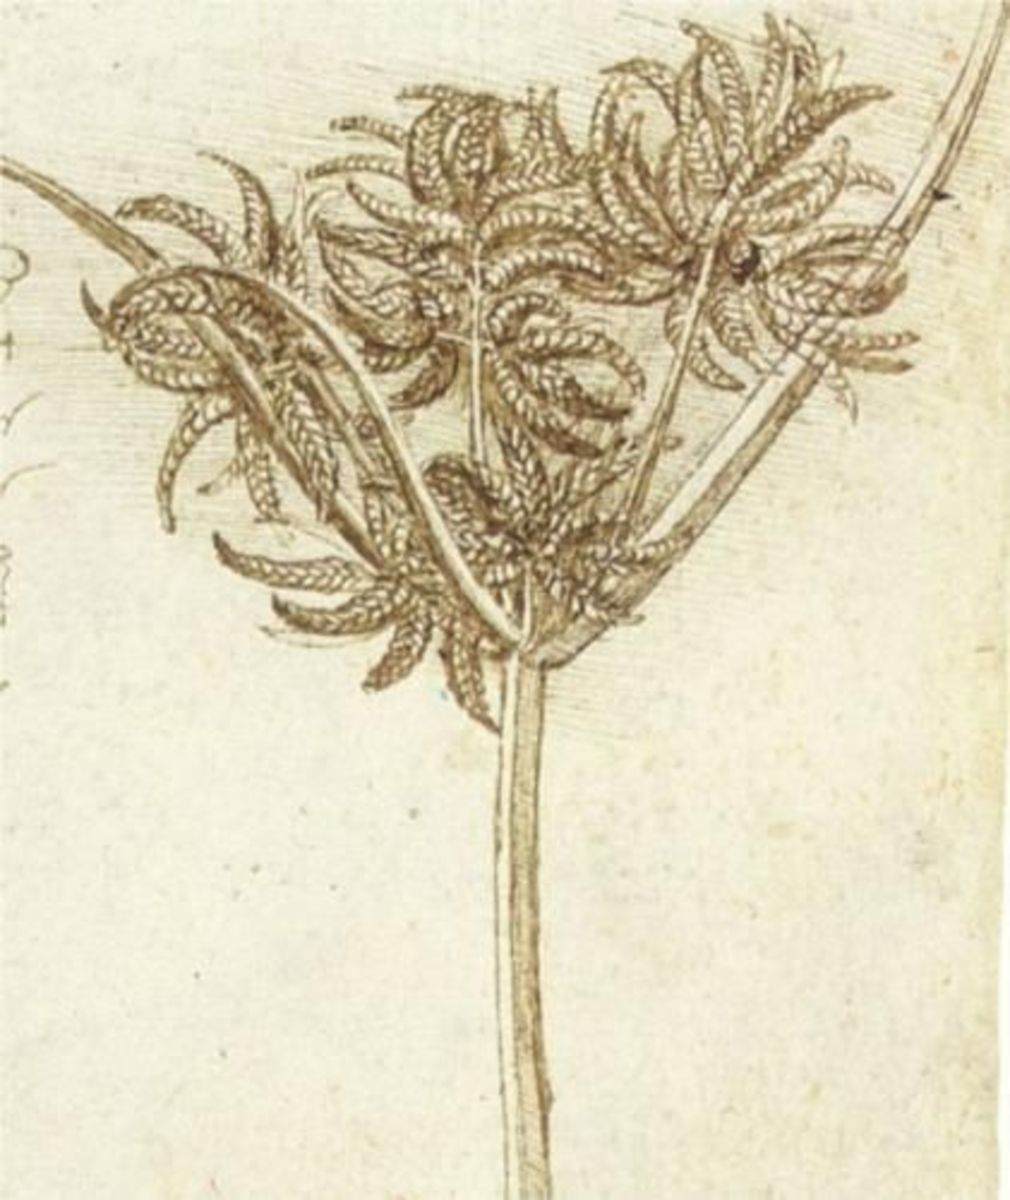 Sedge by Leonardo da Vinci